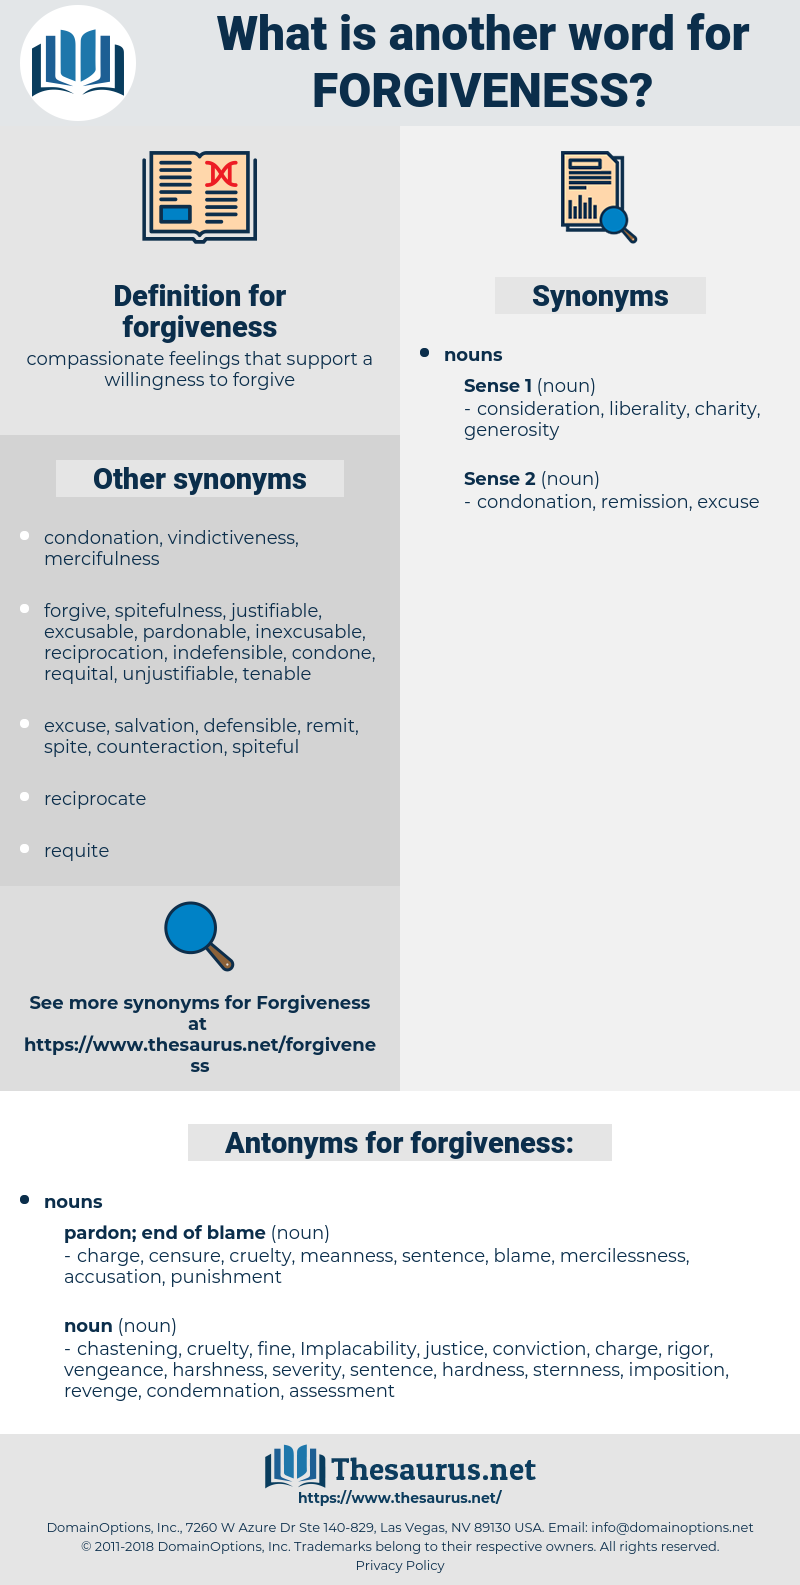 forgiveness, synonym forgiveness, another word for forgiveness, words like forgiveness, thesaurus forgiveness